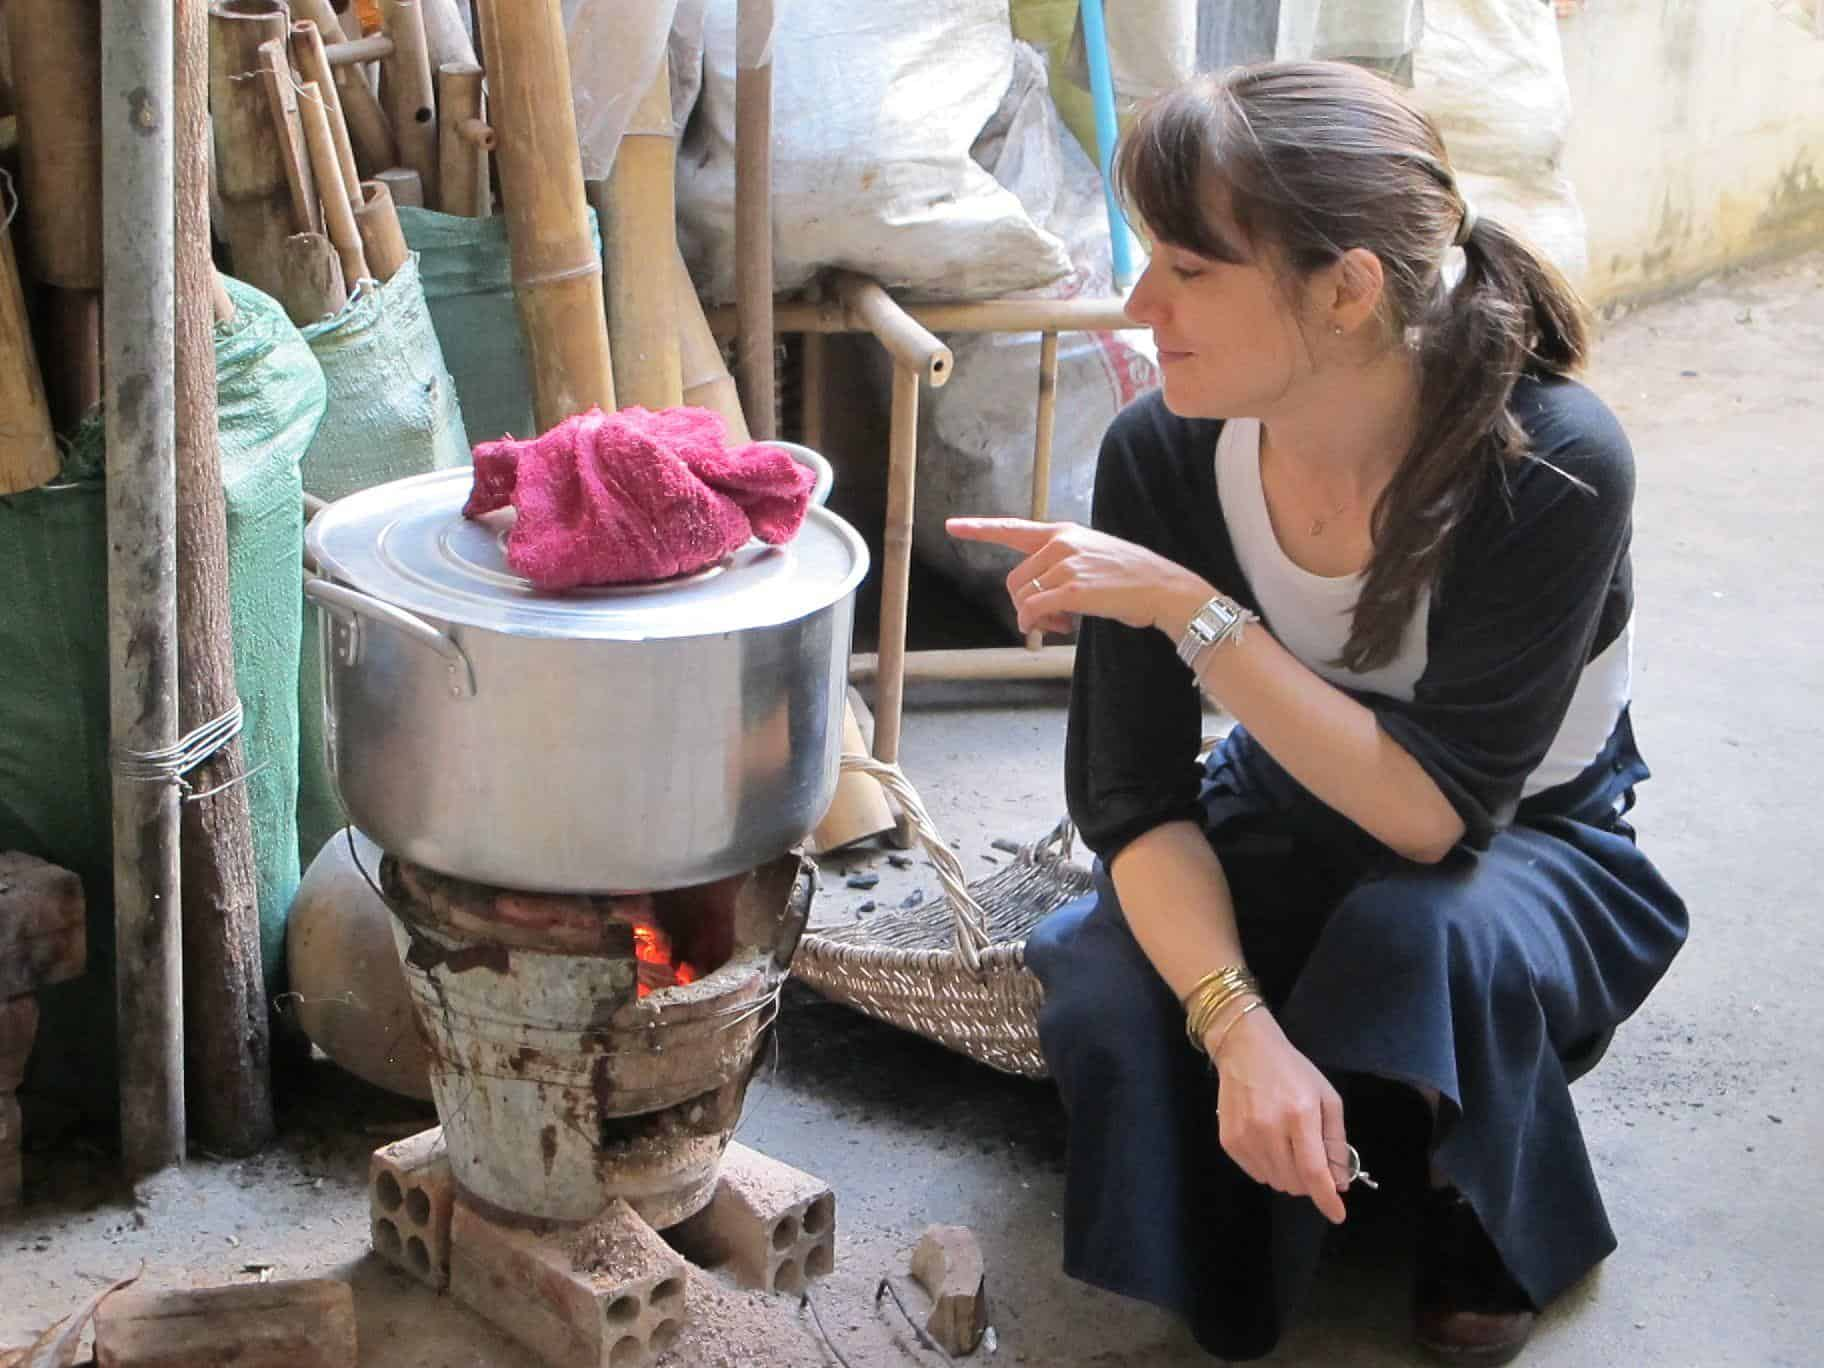 Local Kitchen in Cambodia, photo by Kenden of Jewish Food Hero